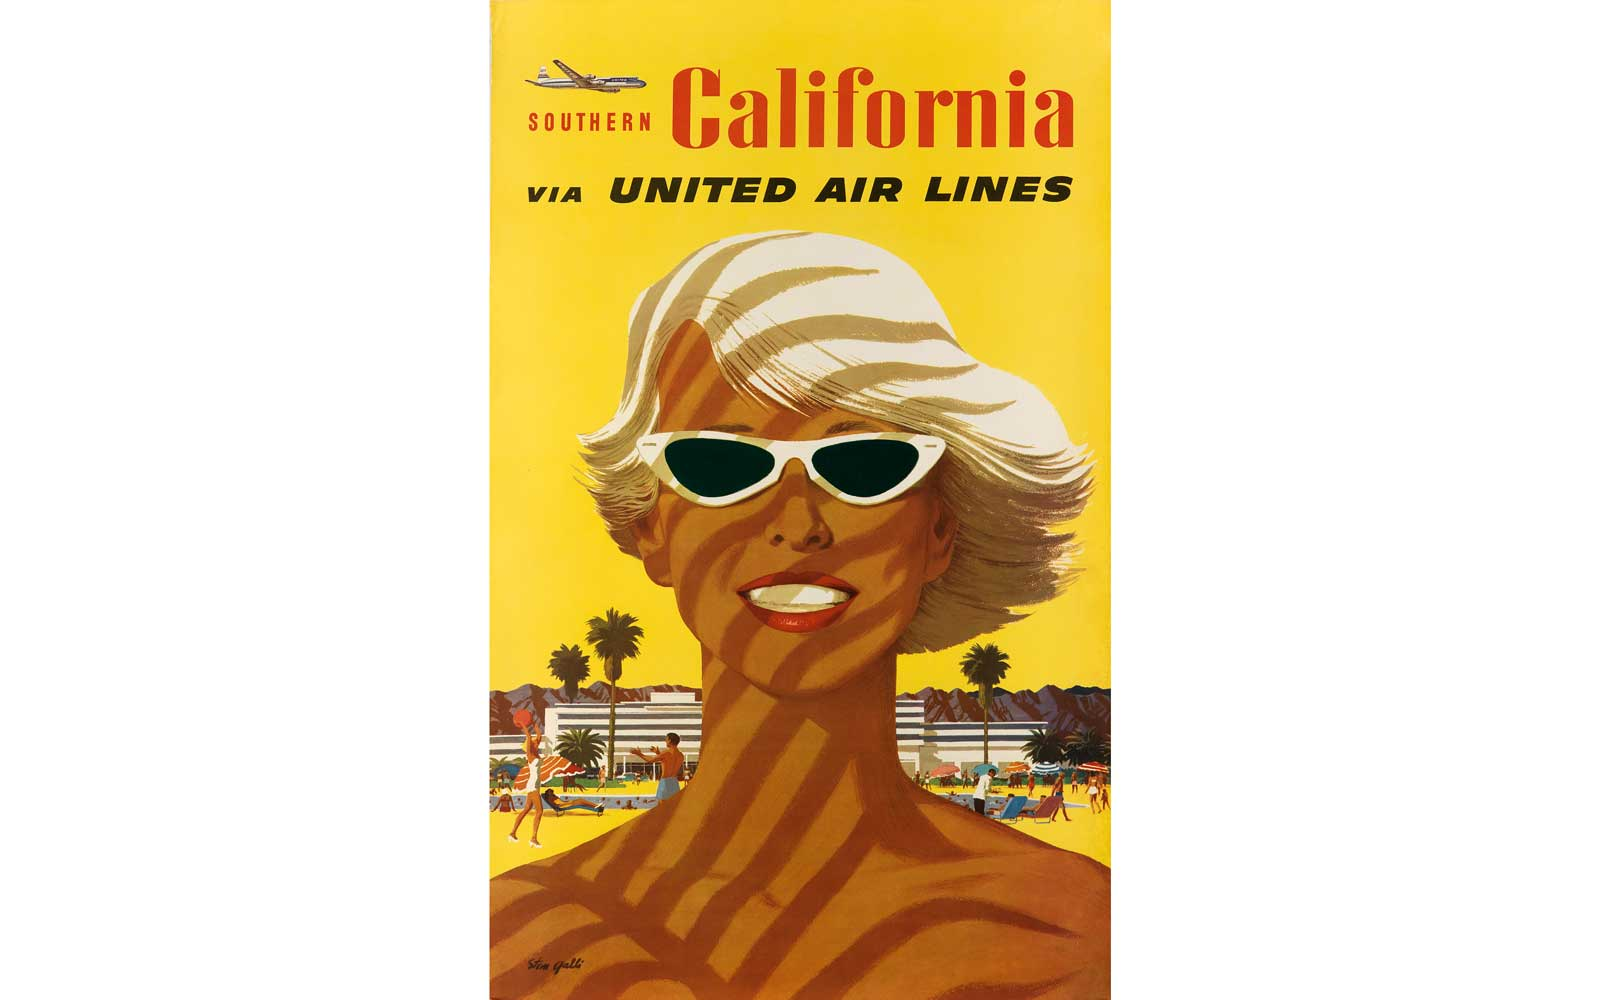 Southern California Via United Airlines